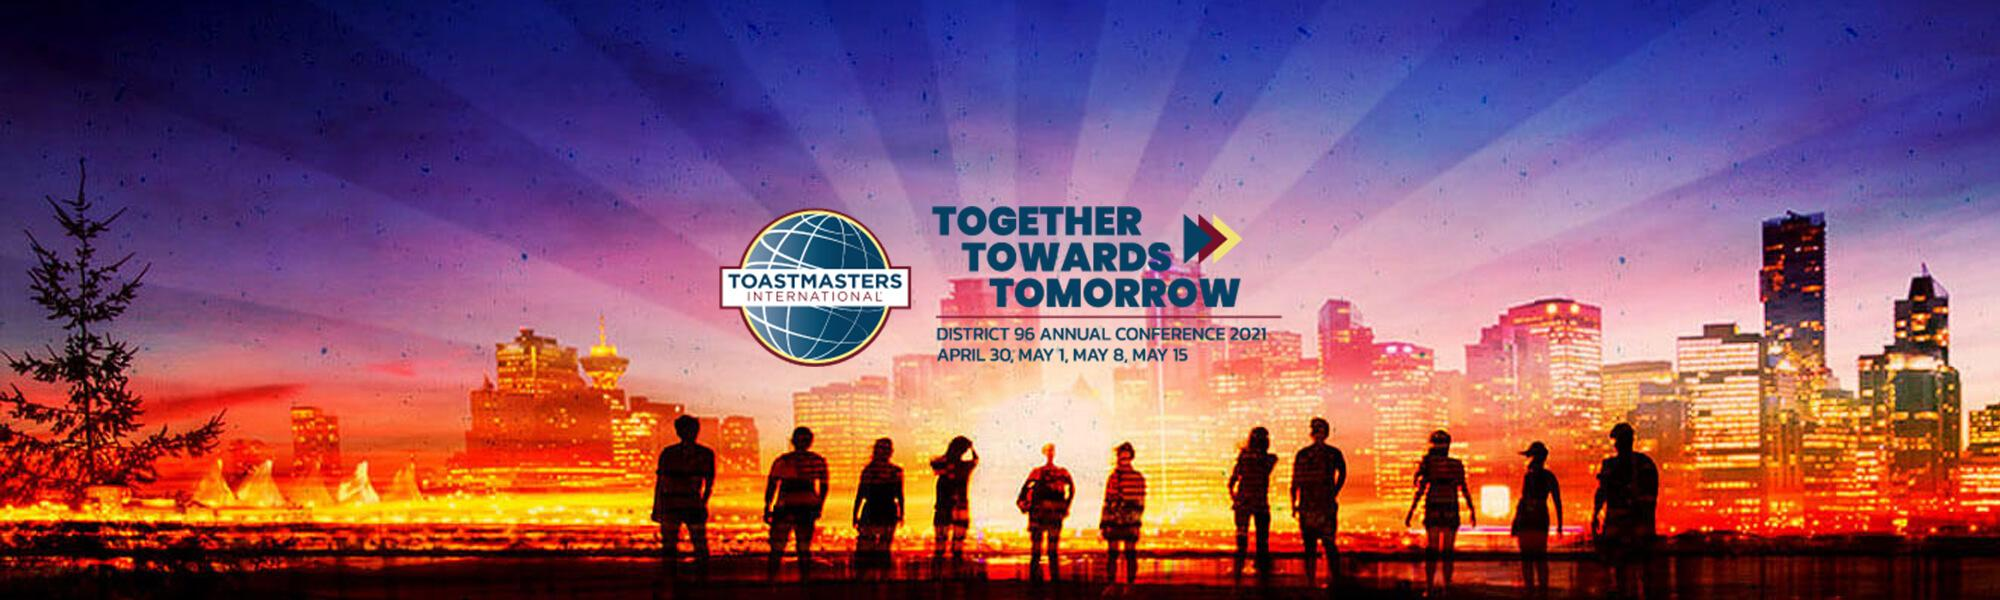 """Together Towards Tomorrow"" slogan with a group of people silhouetted looking at a city at sunset"